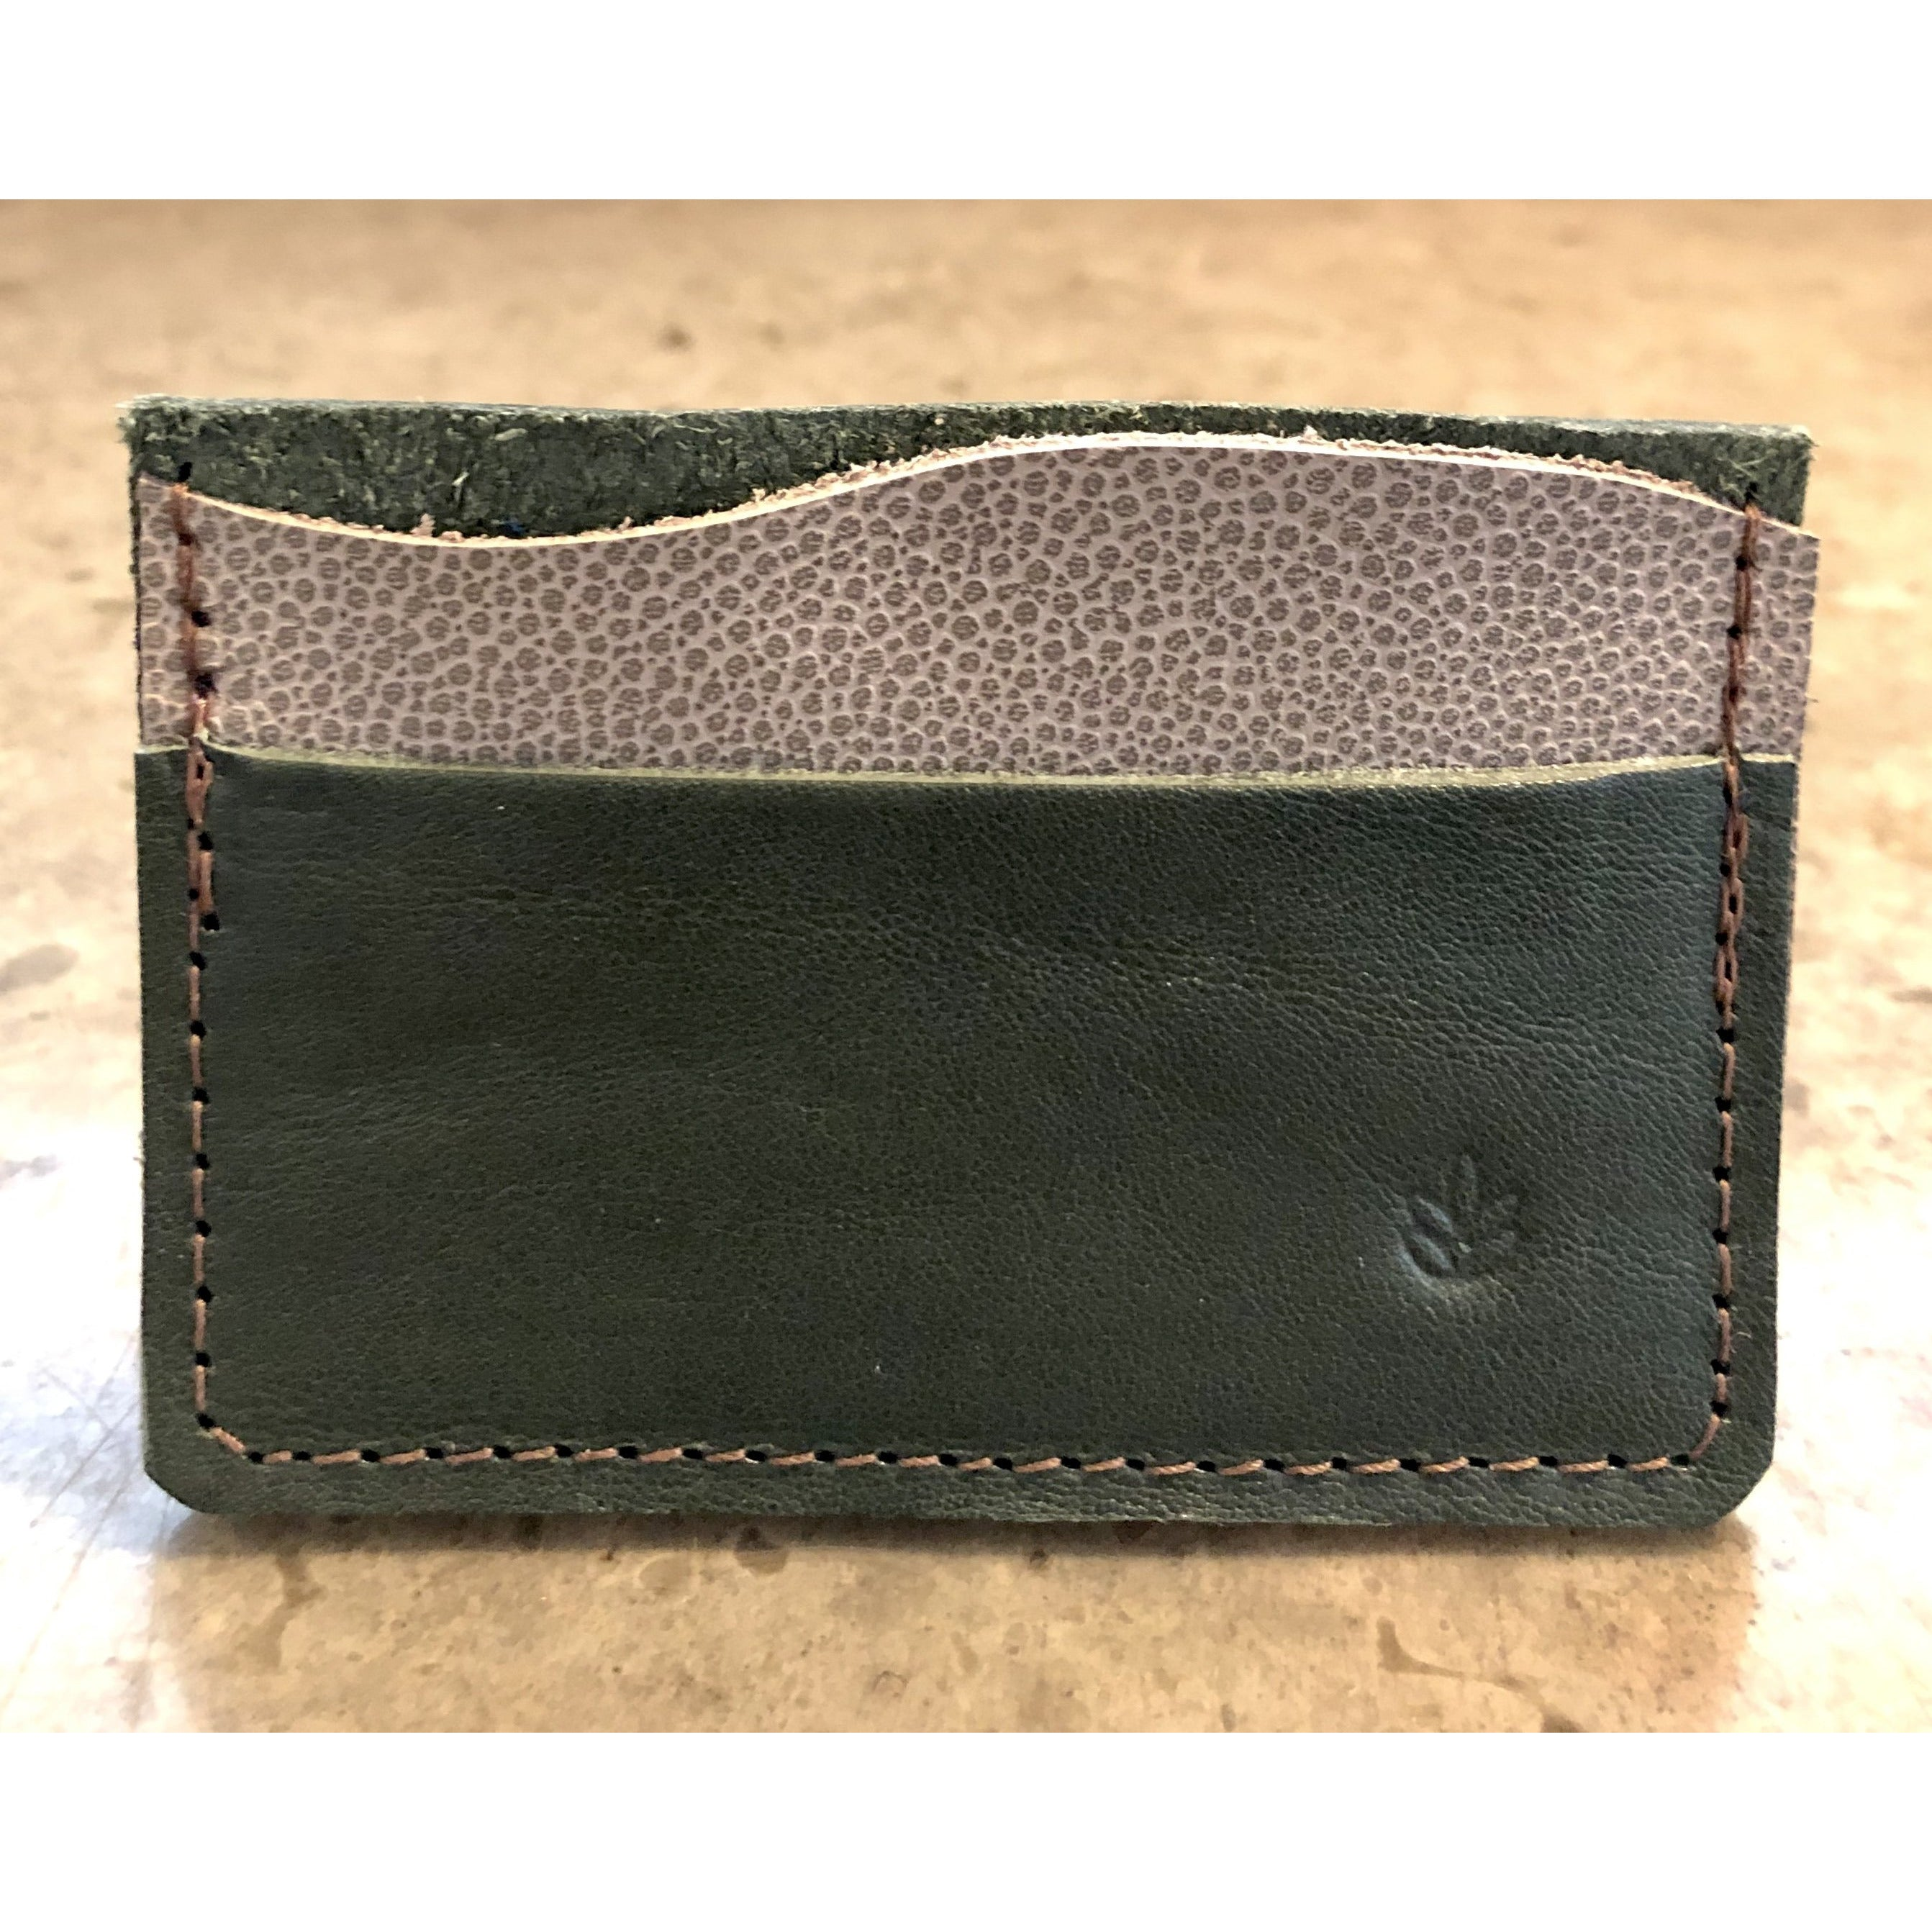 Minimalist 3 Pocket Leather Wallet in forest green and spotted off white